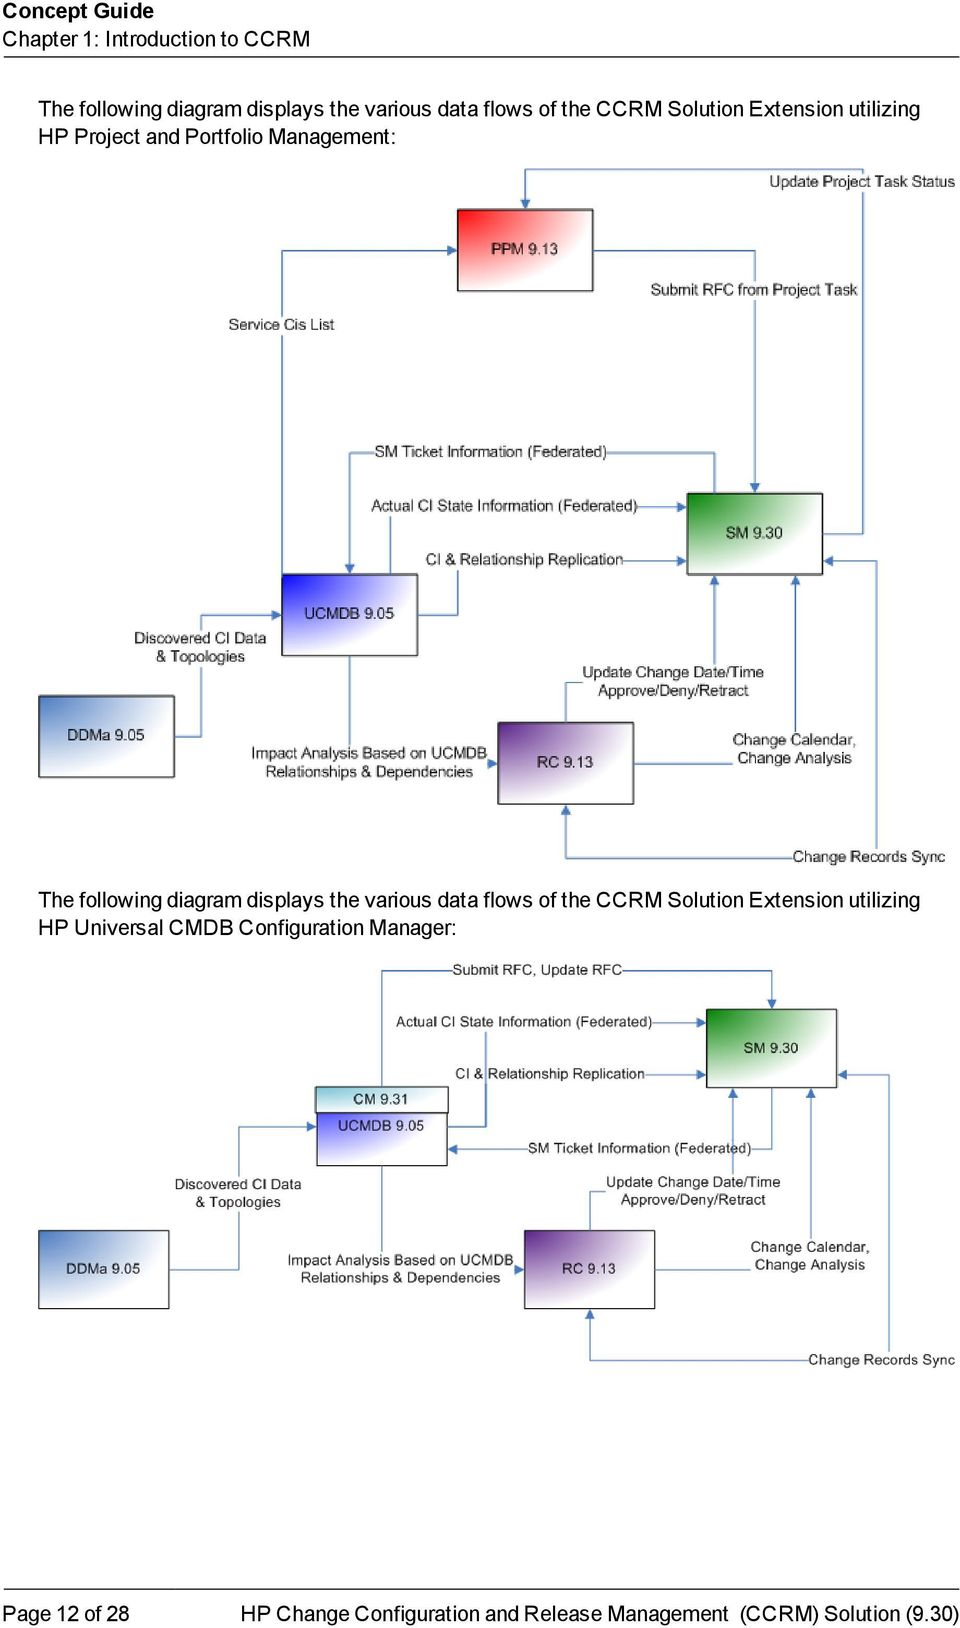 Management: The following diagram displays the various data flows of the CCRM